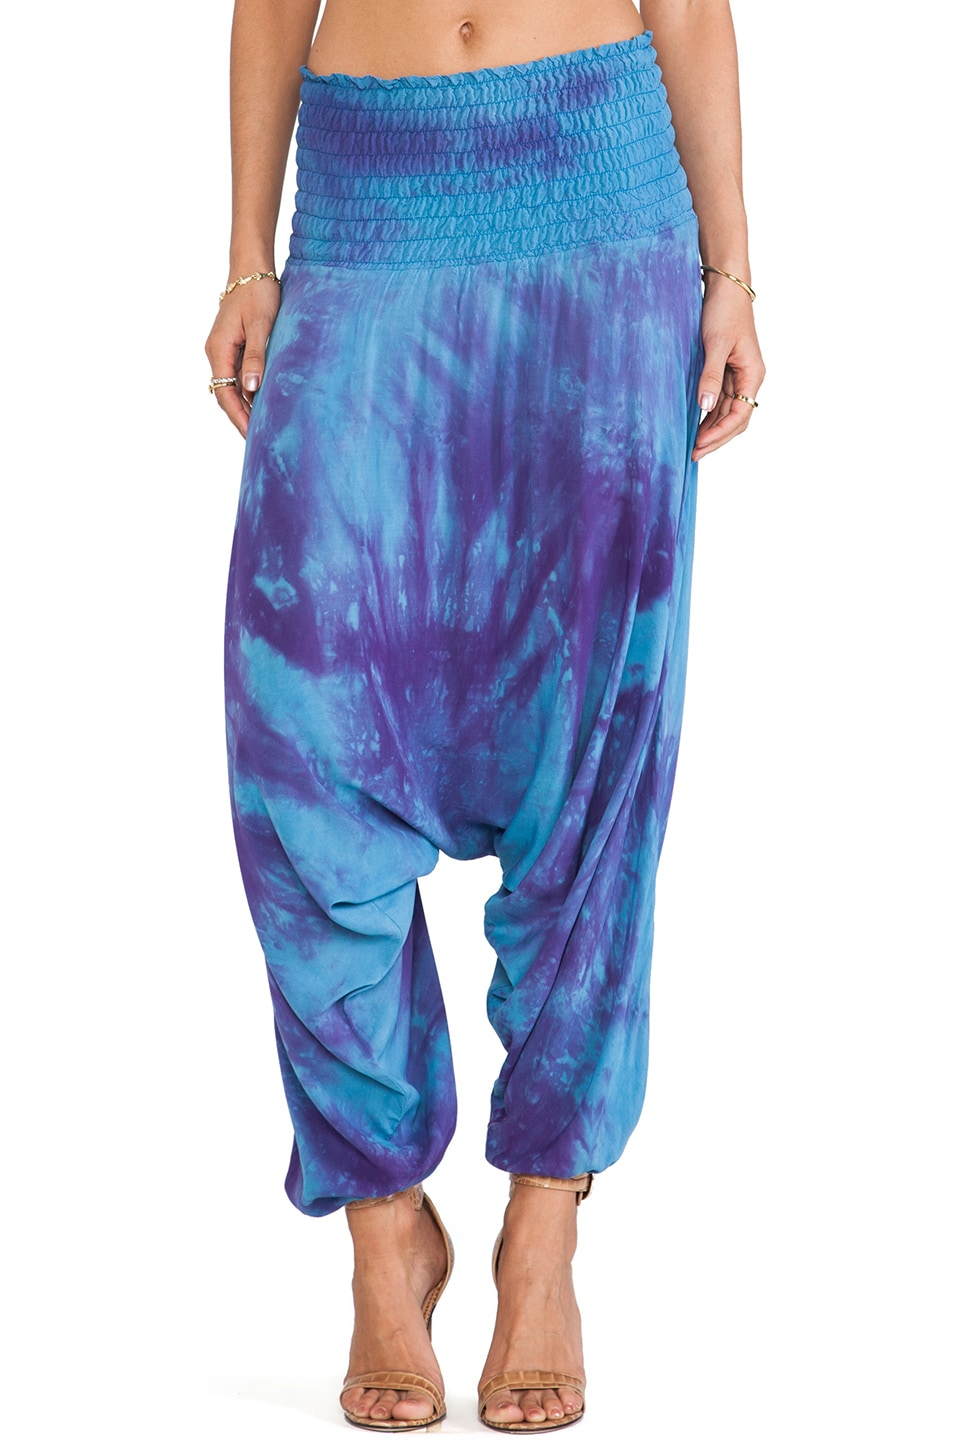 Blue Life Easy Breezy Harem Pant in Twilight